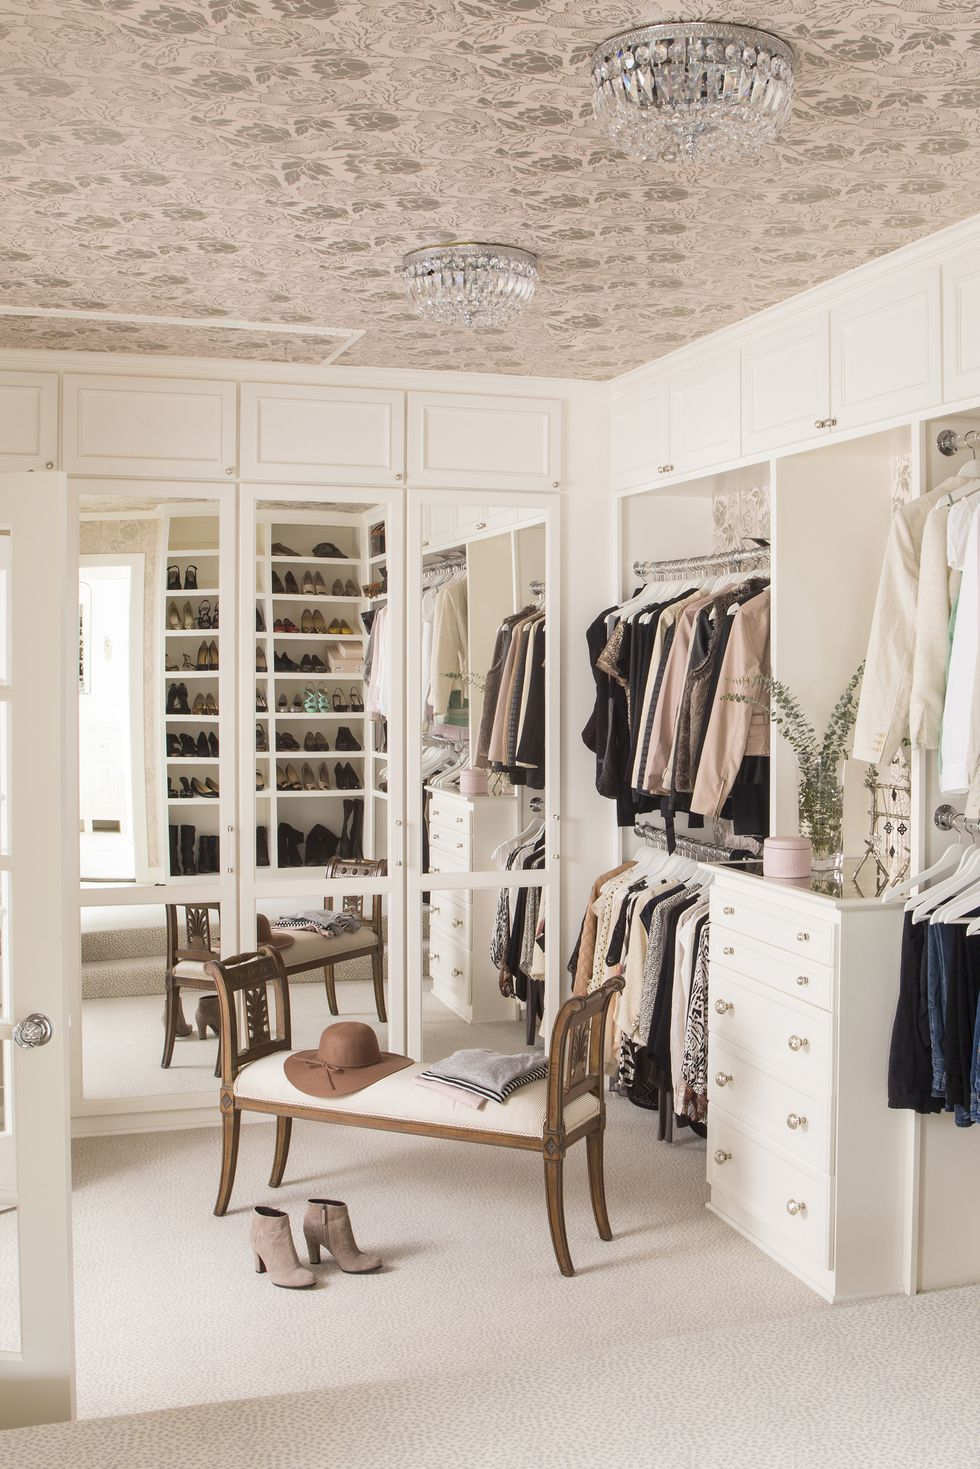 5 Luxury Closet Decor Ideas 03 luxury closet decor ideas 5 Luxury Closet Decor Ideas 5 Luxury Closet Decor Ideas 03